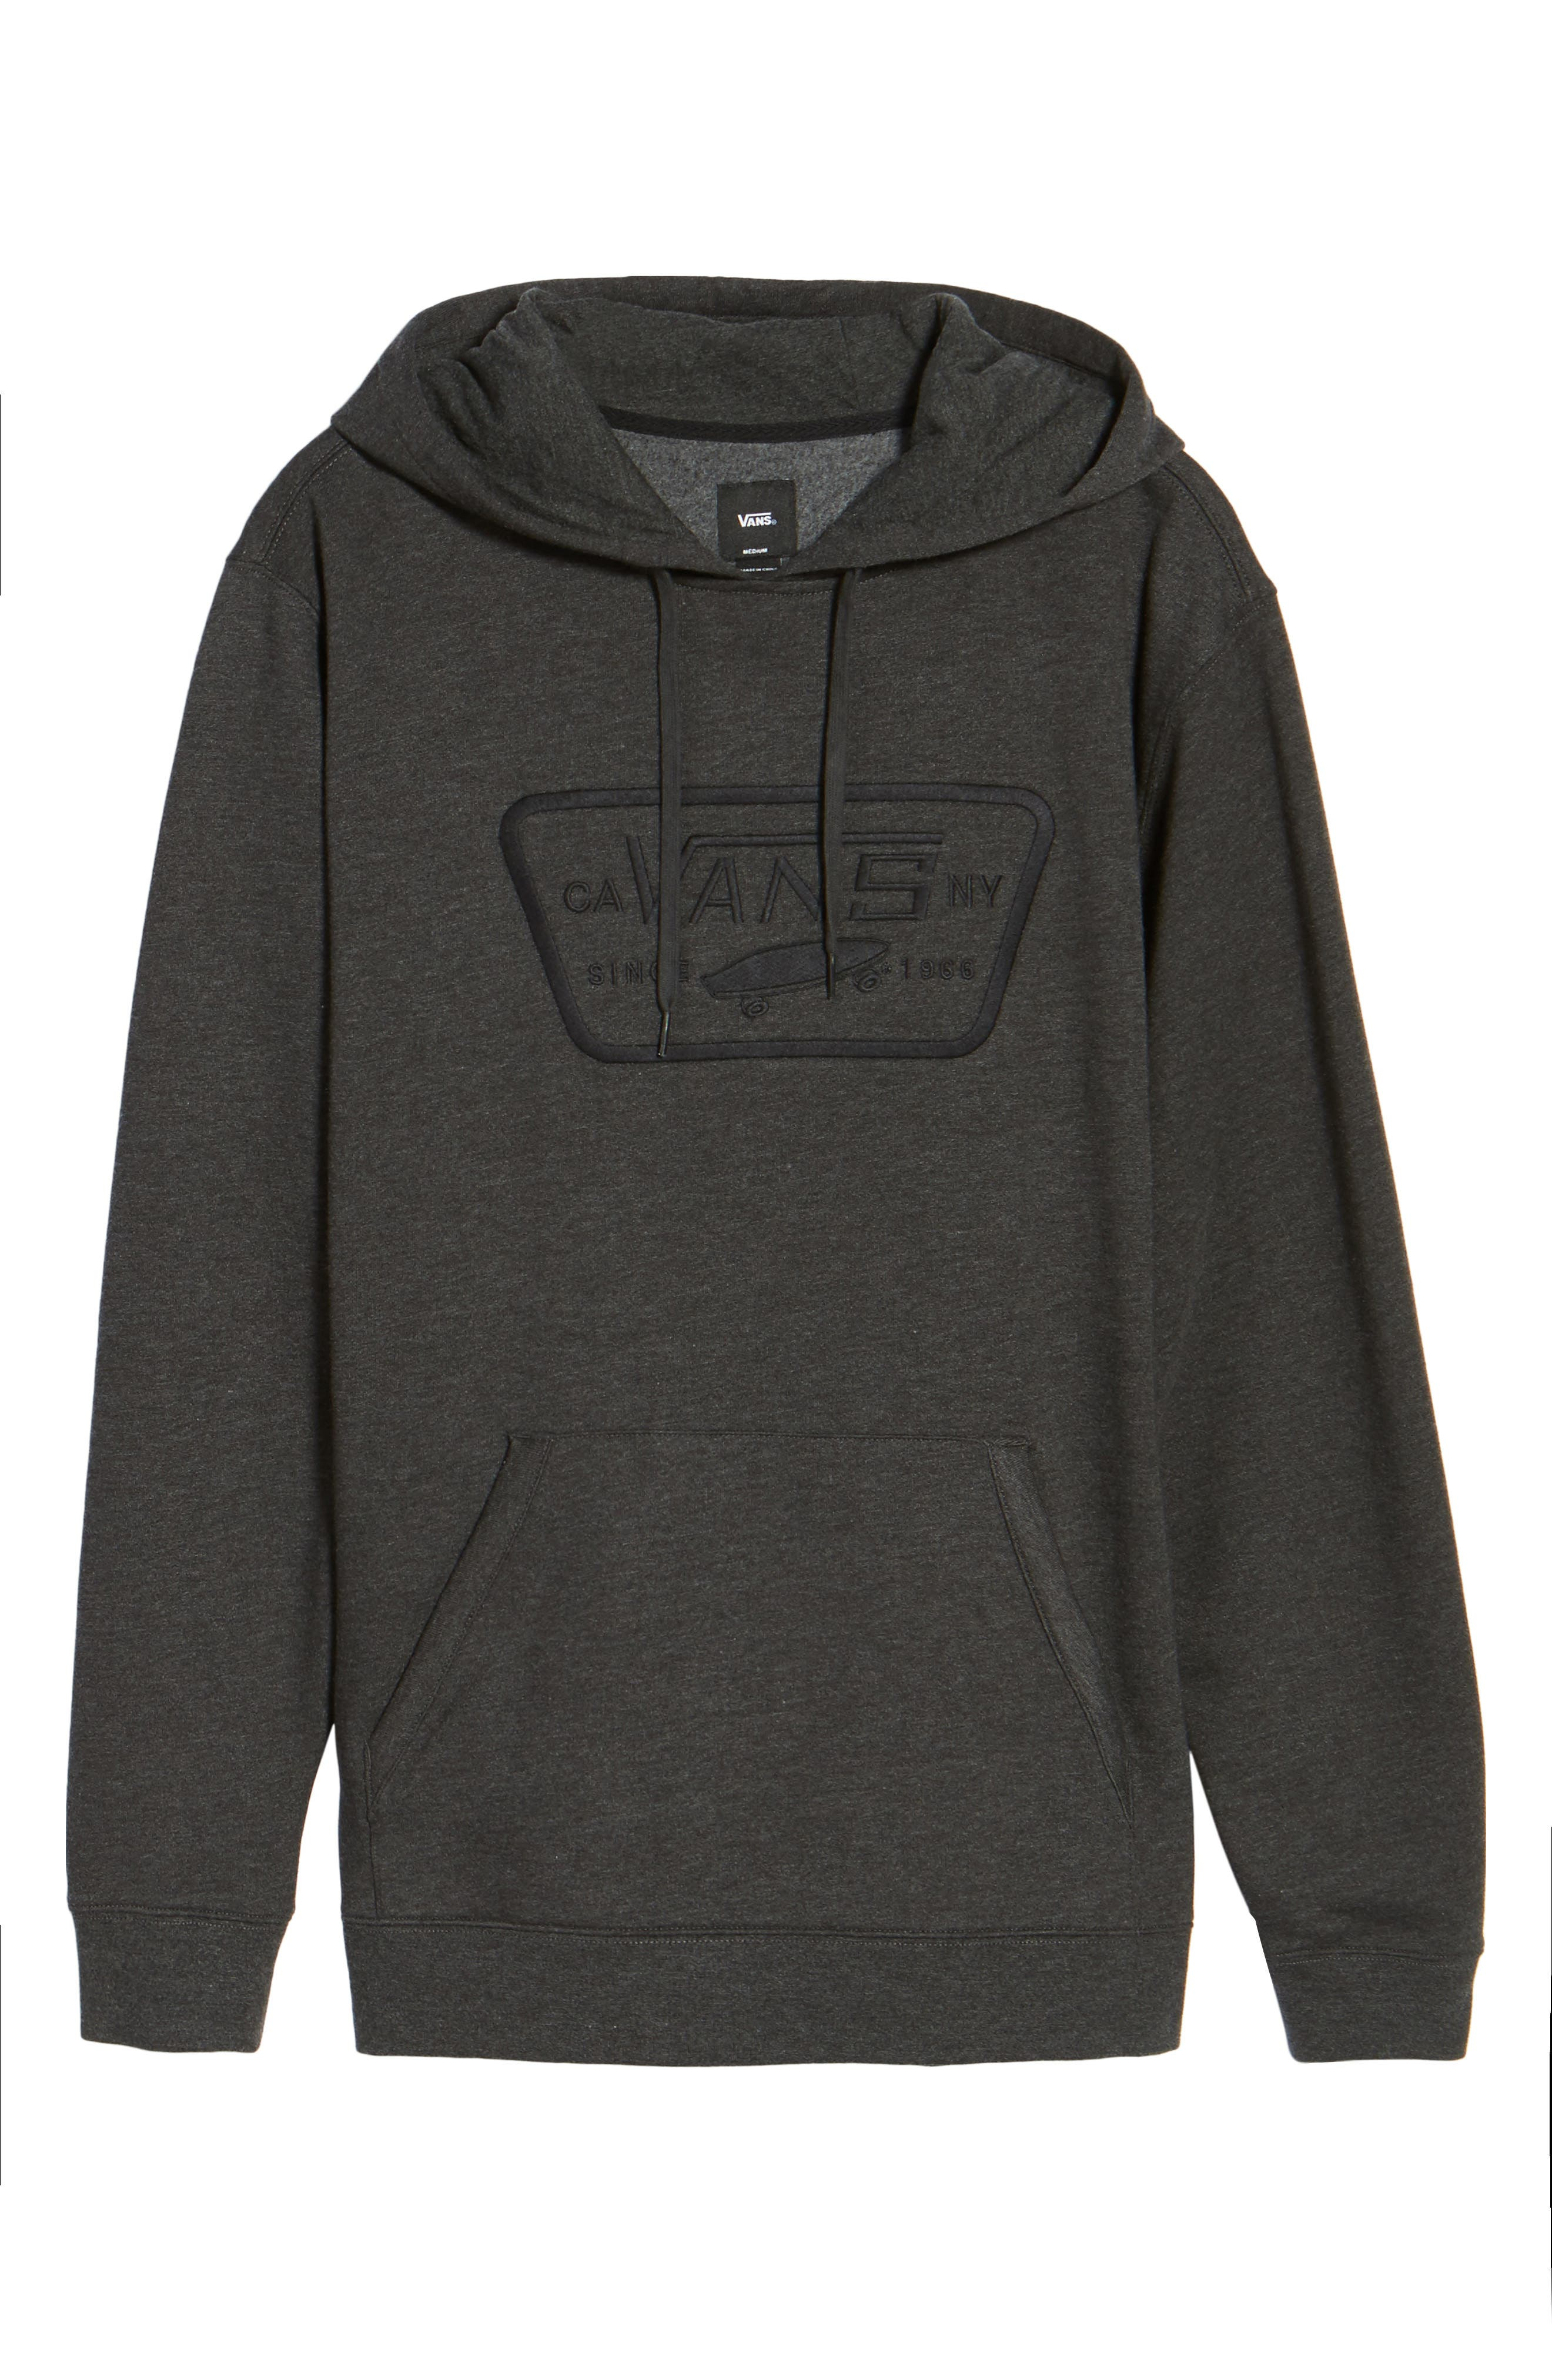 Full Patch Stitch Hoodie,                             Alternate thumbnail 6, color,                             Black Heather